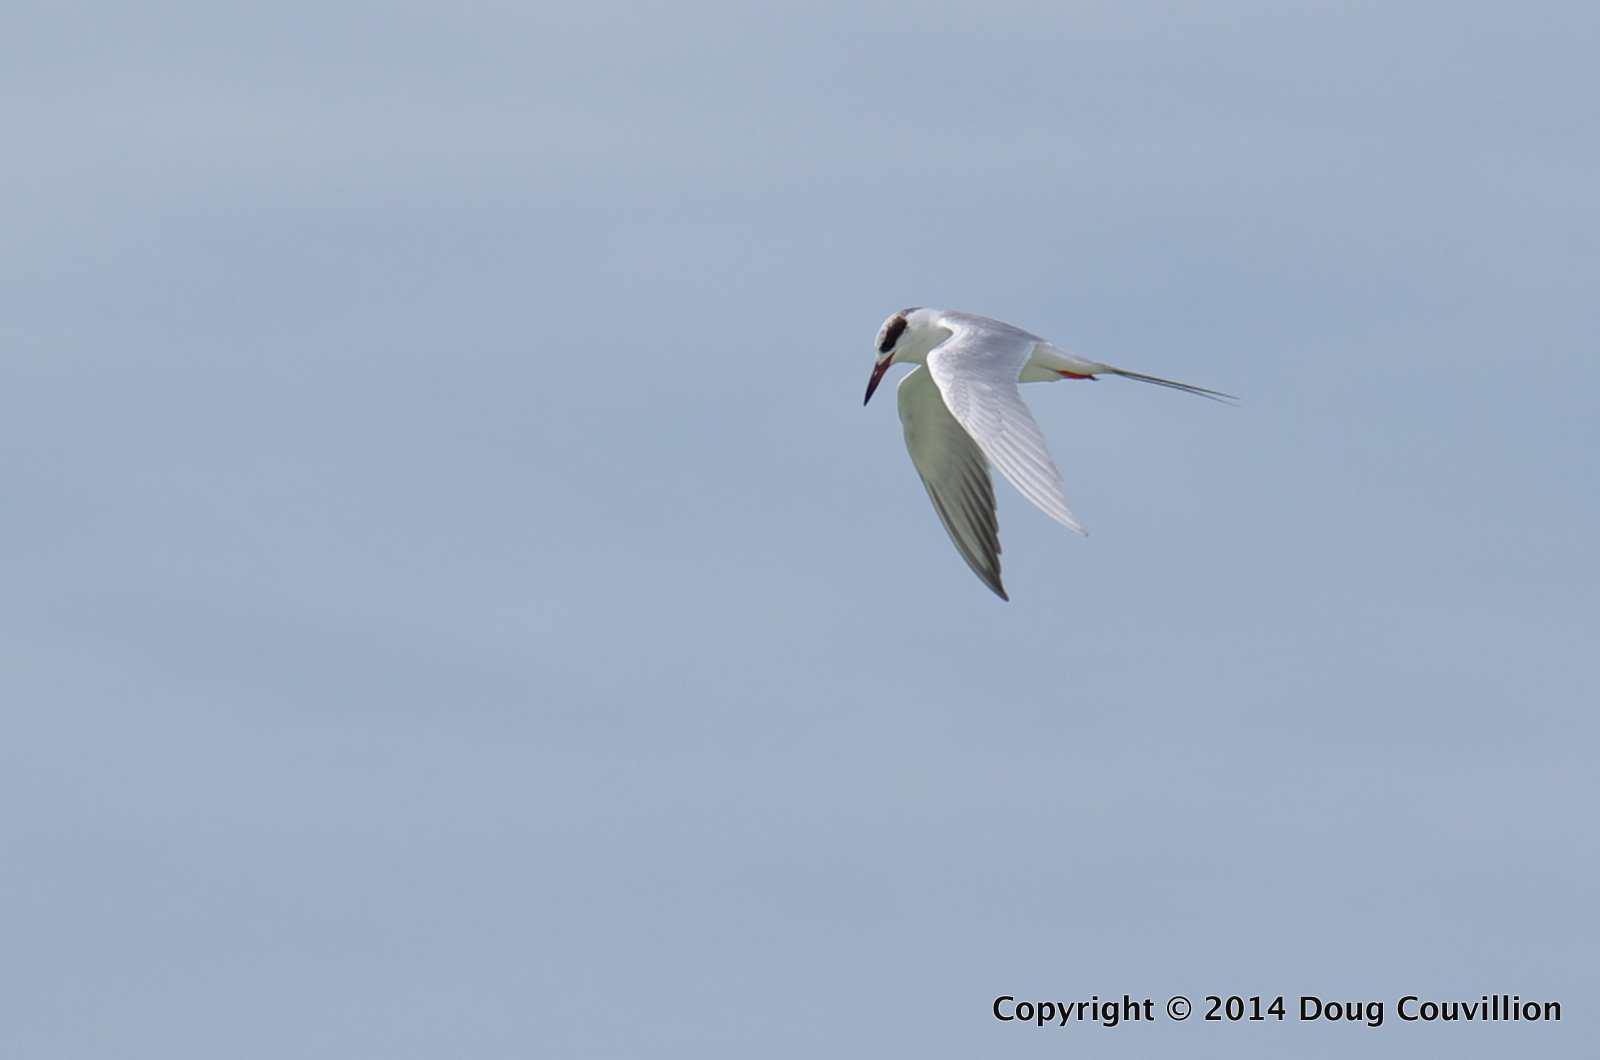 photograph of a Forster's Tern hovering above the Gulf Of Mexico